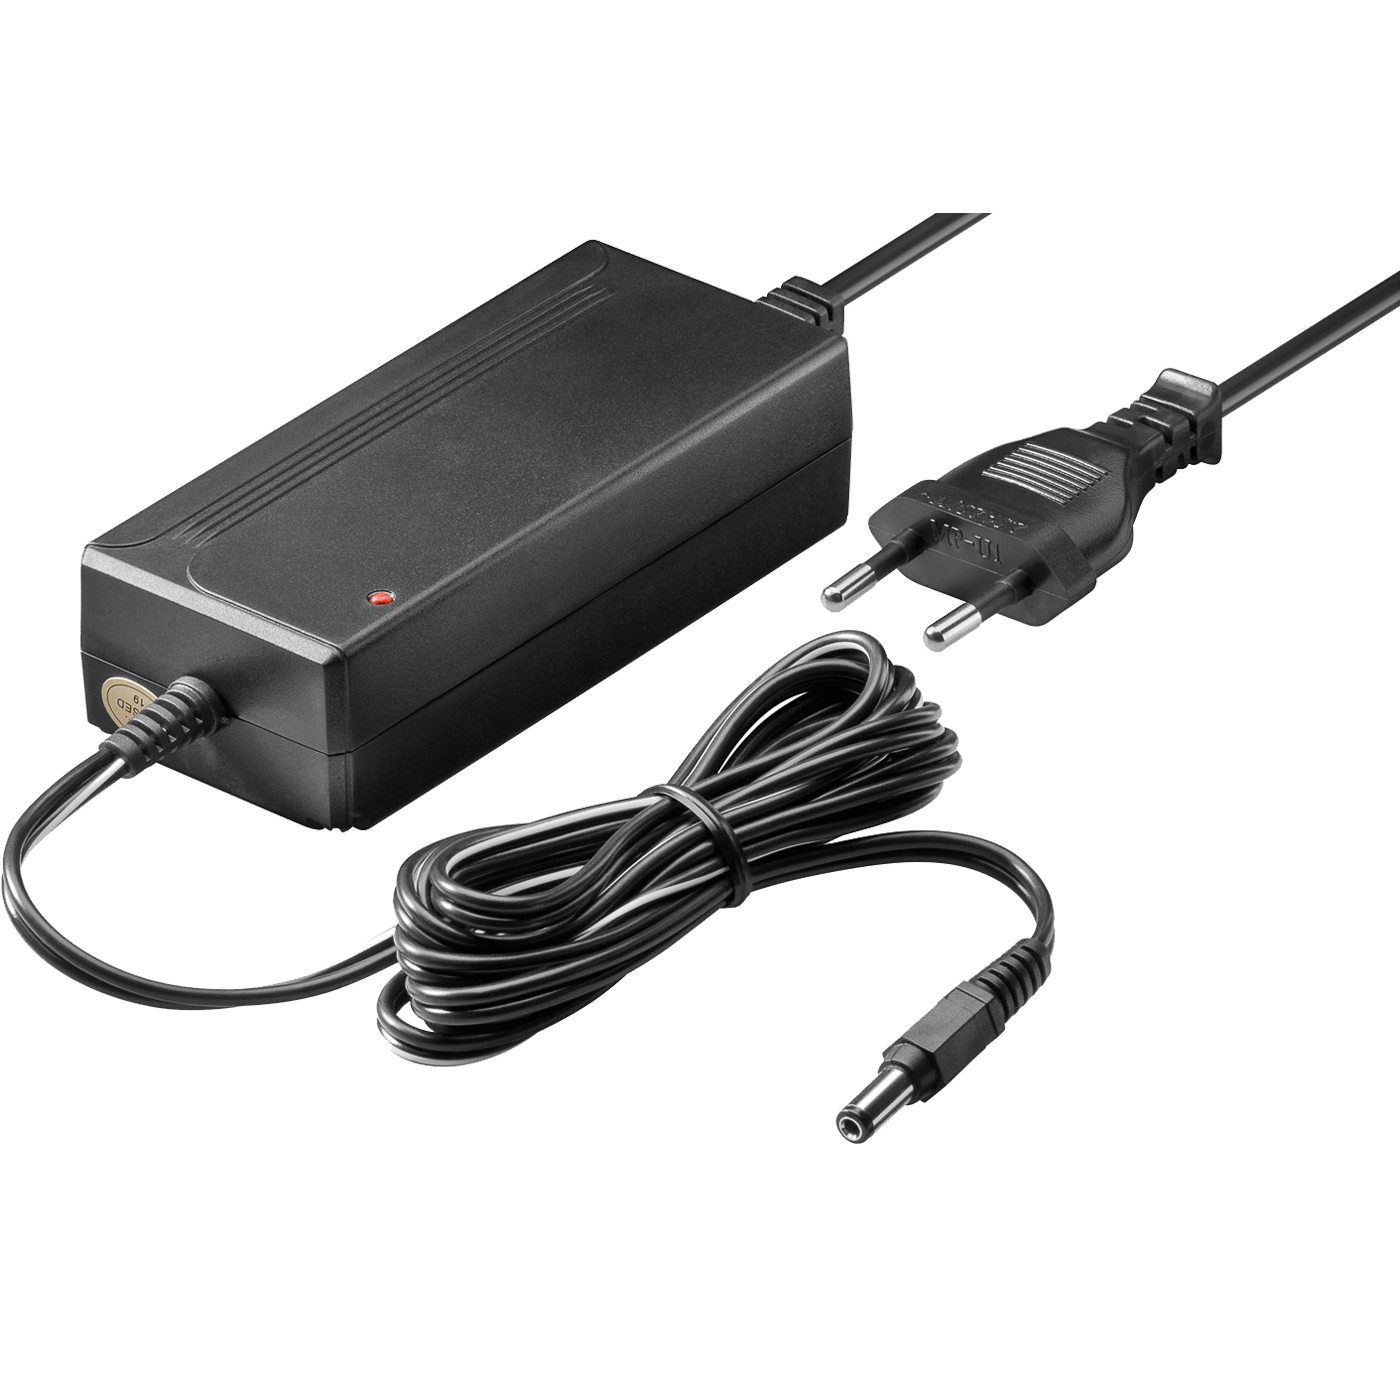 Eule - Adapter 12V/5A